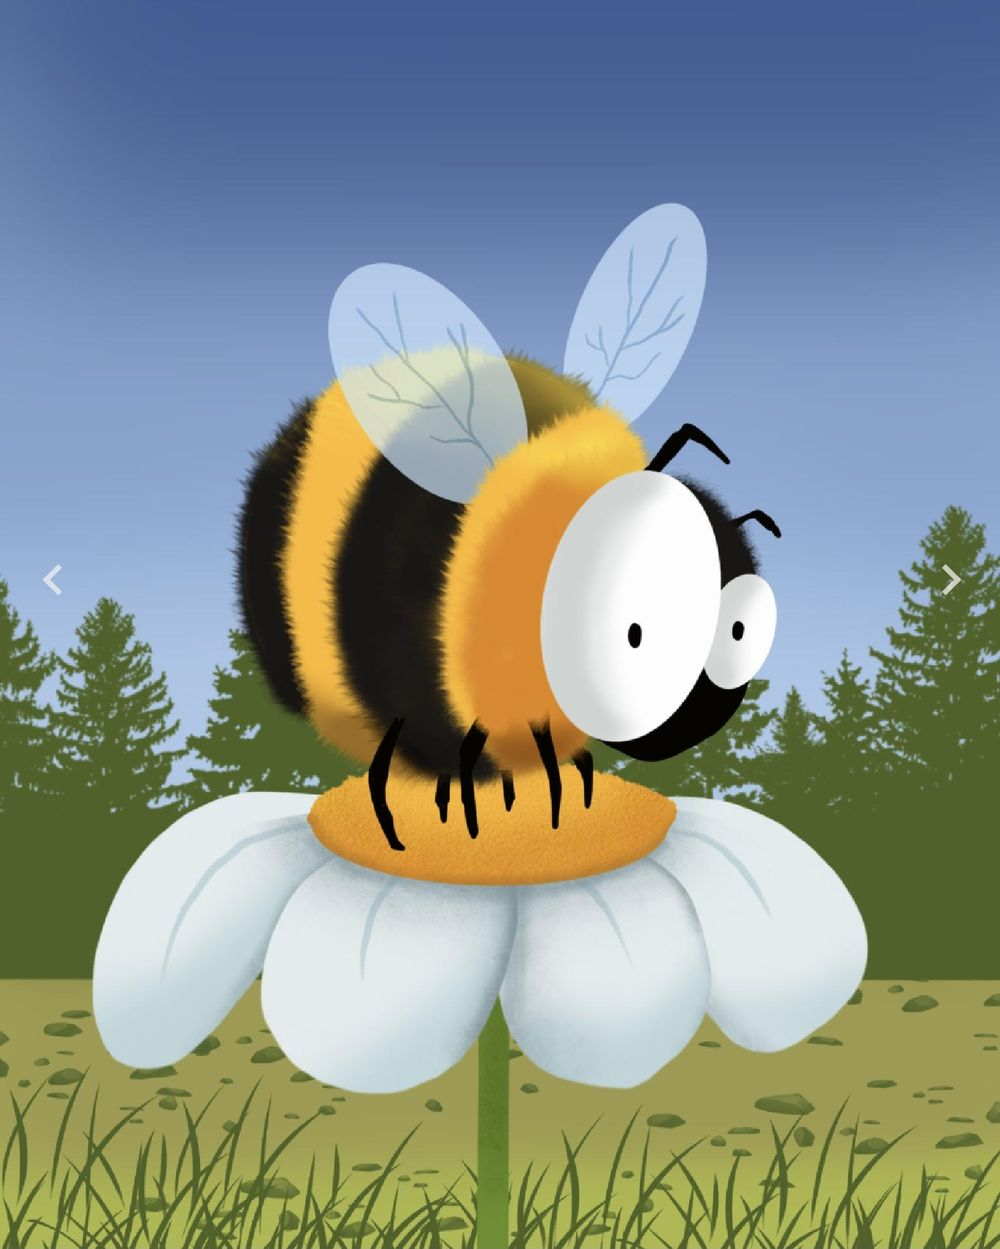 Bee - image 1 - student project